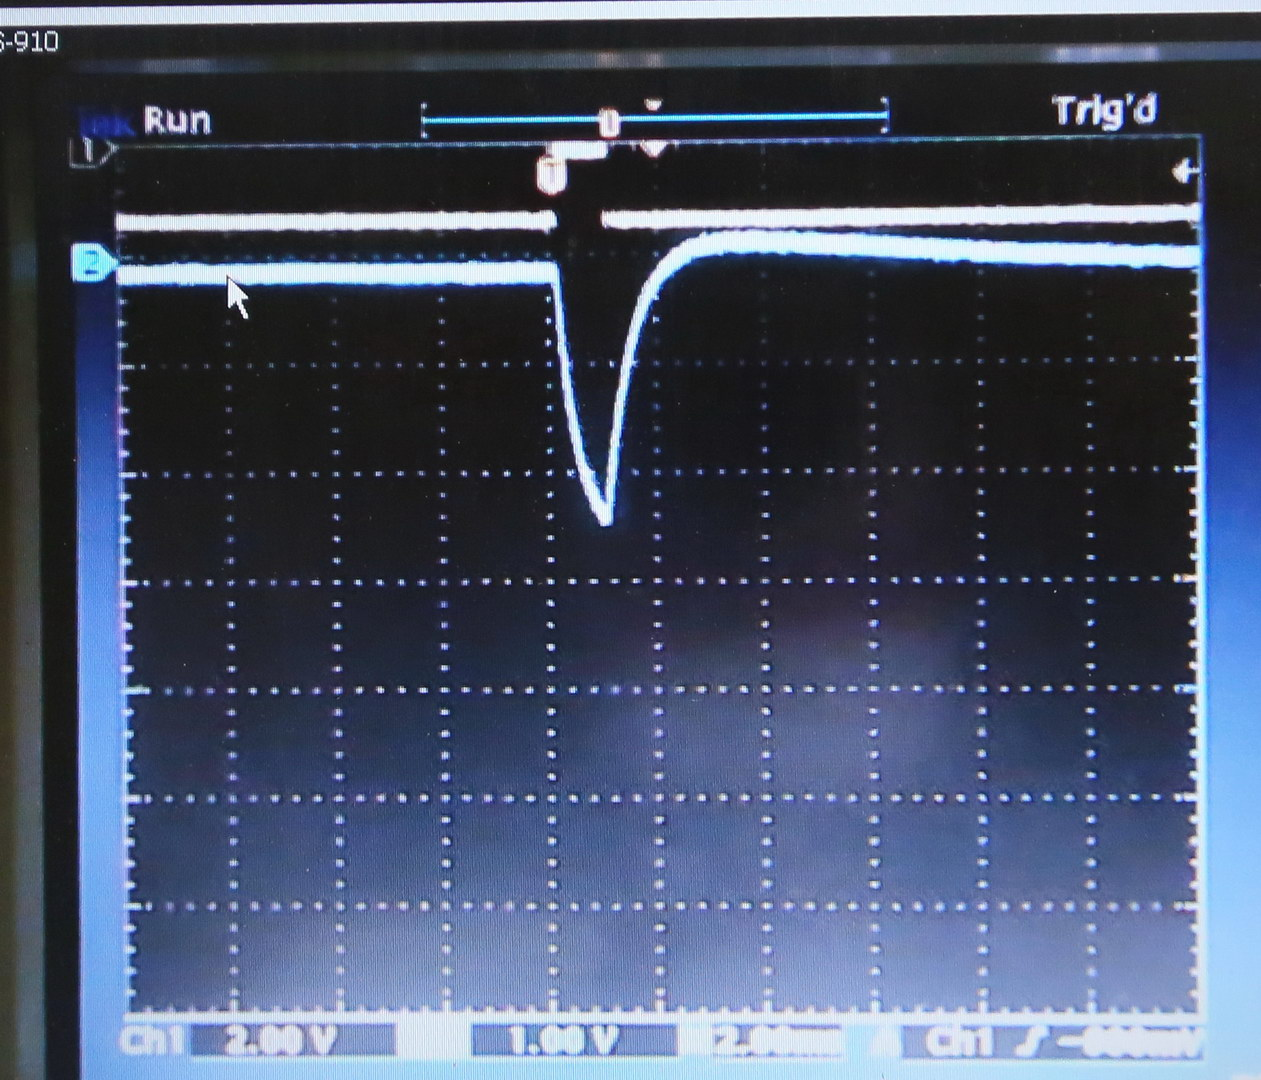 2013-02-22_52 ELBE in Macro mode (5 Hz); channel 1: machine pulse; channel 2: pulse obtained from the moderator (@ 1 MOhm); pulse height about 2.5 V